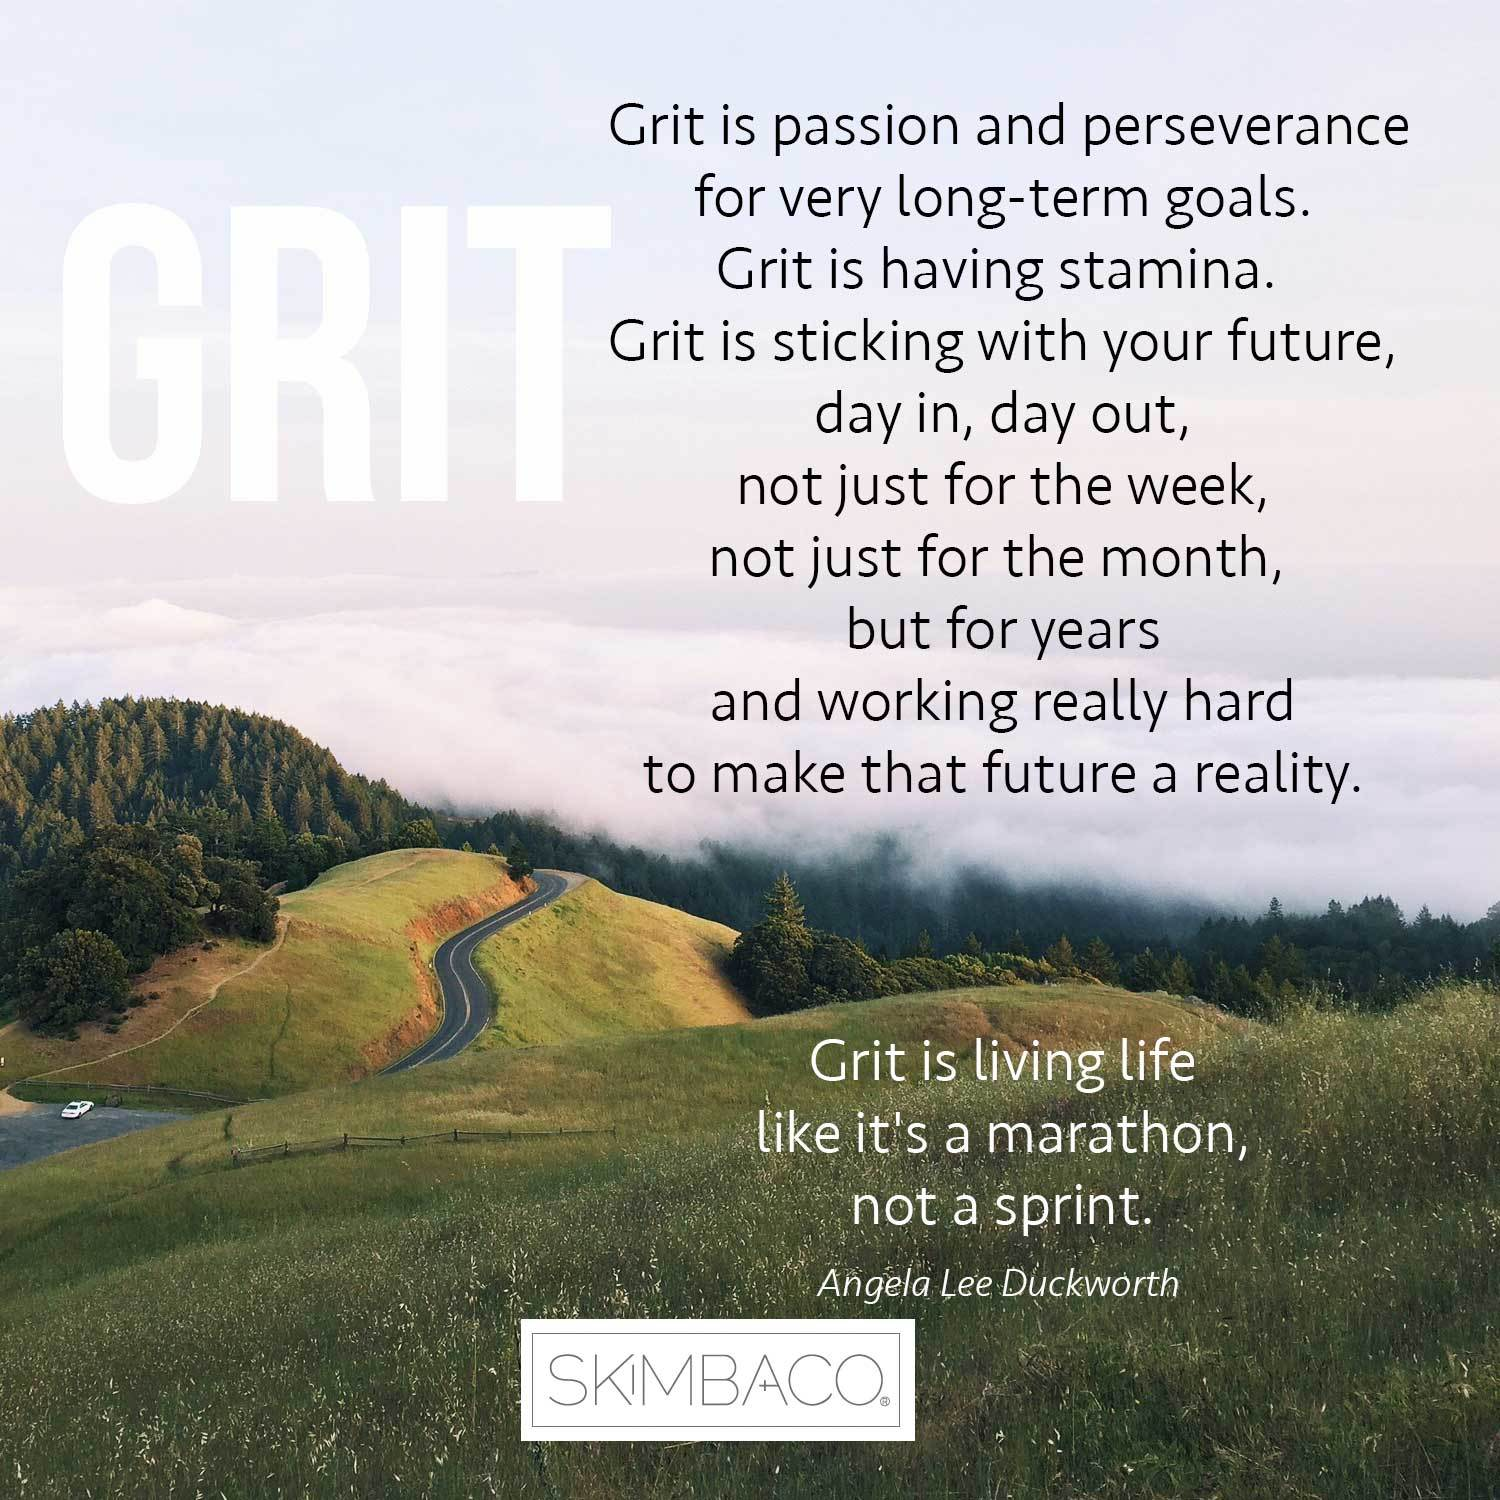 skimbaco-whats-grit